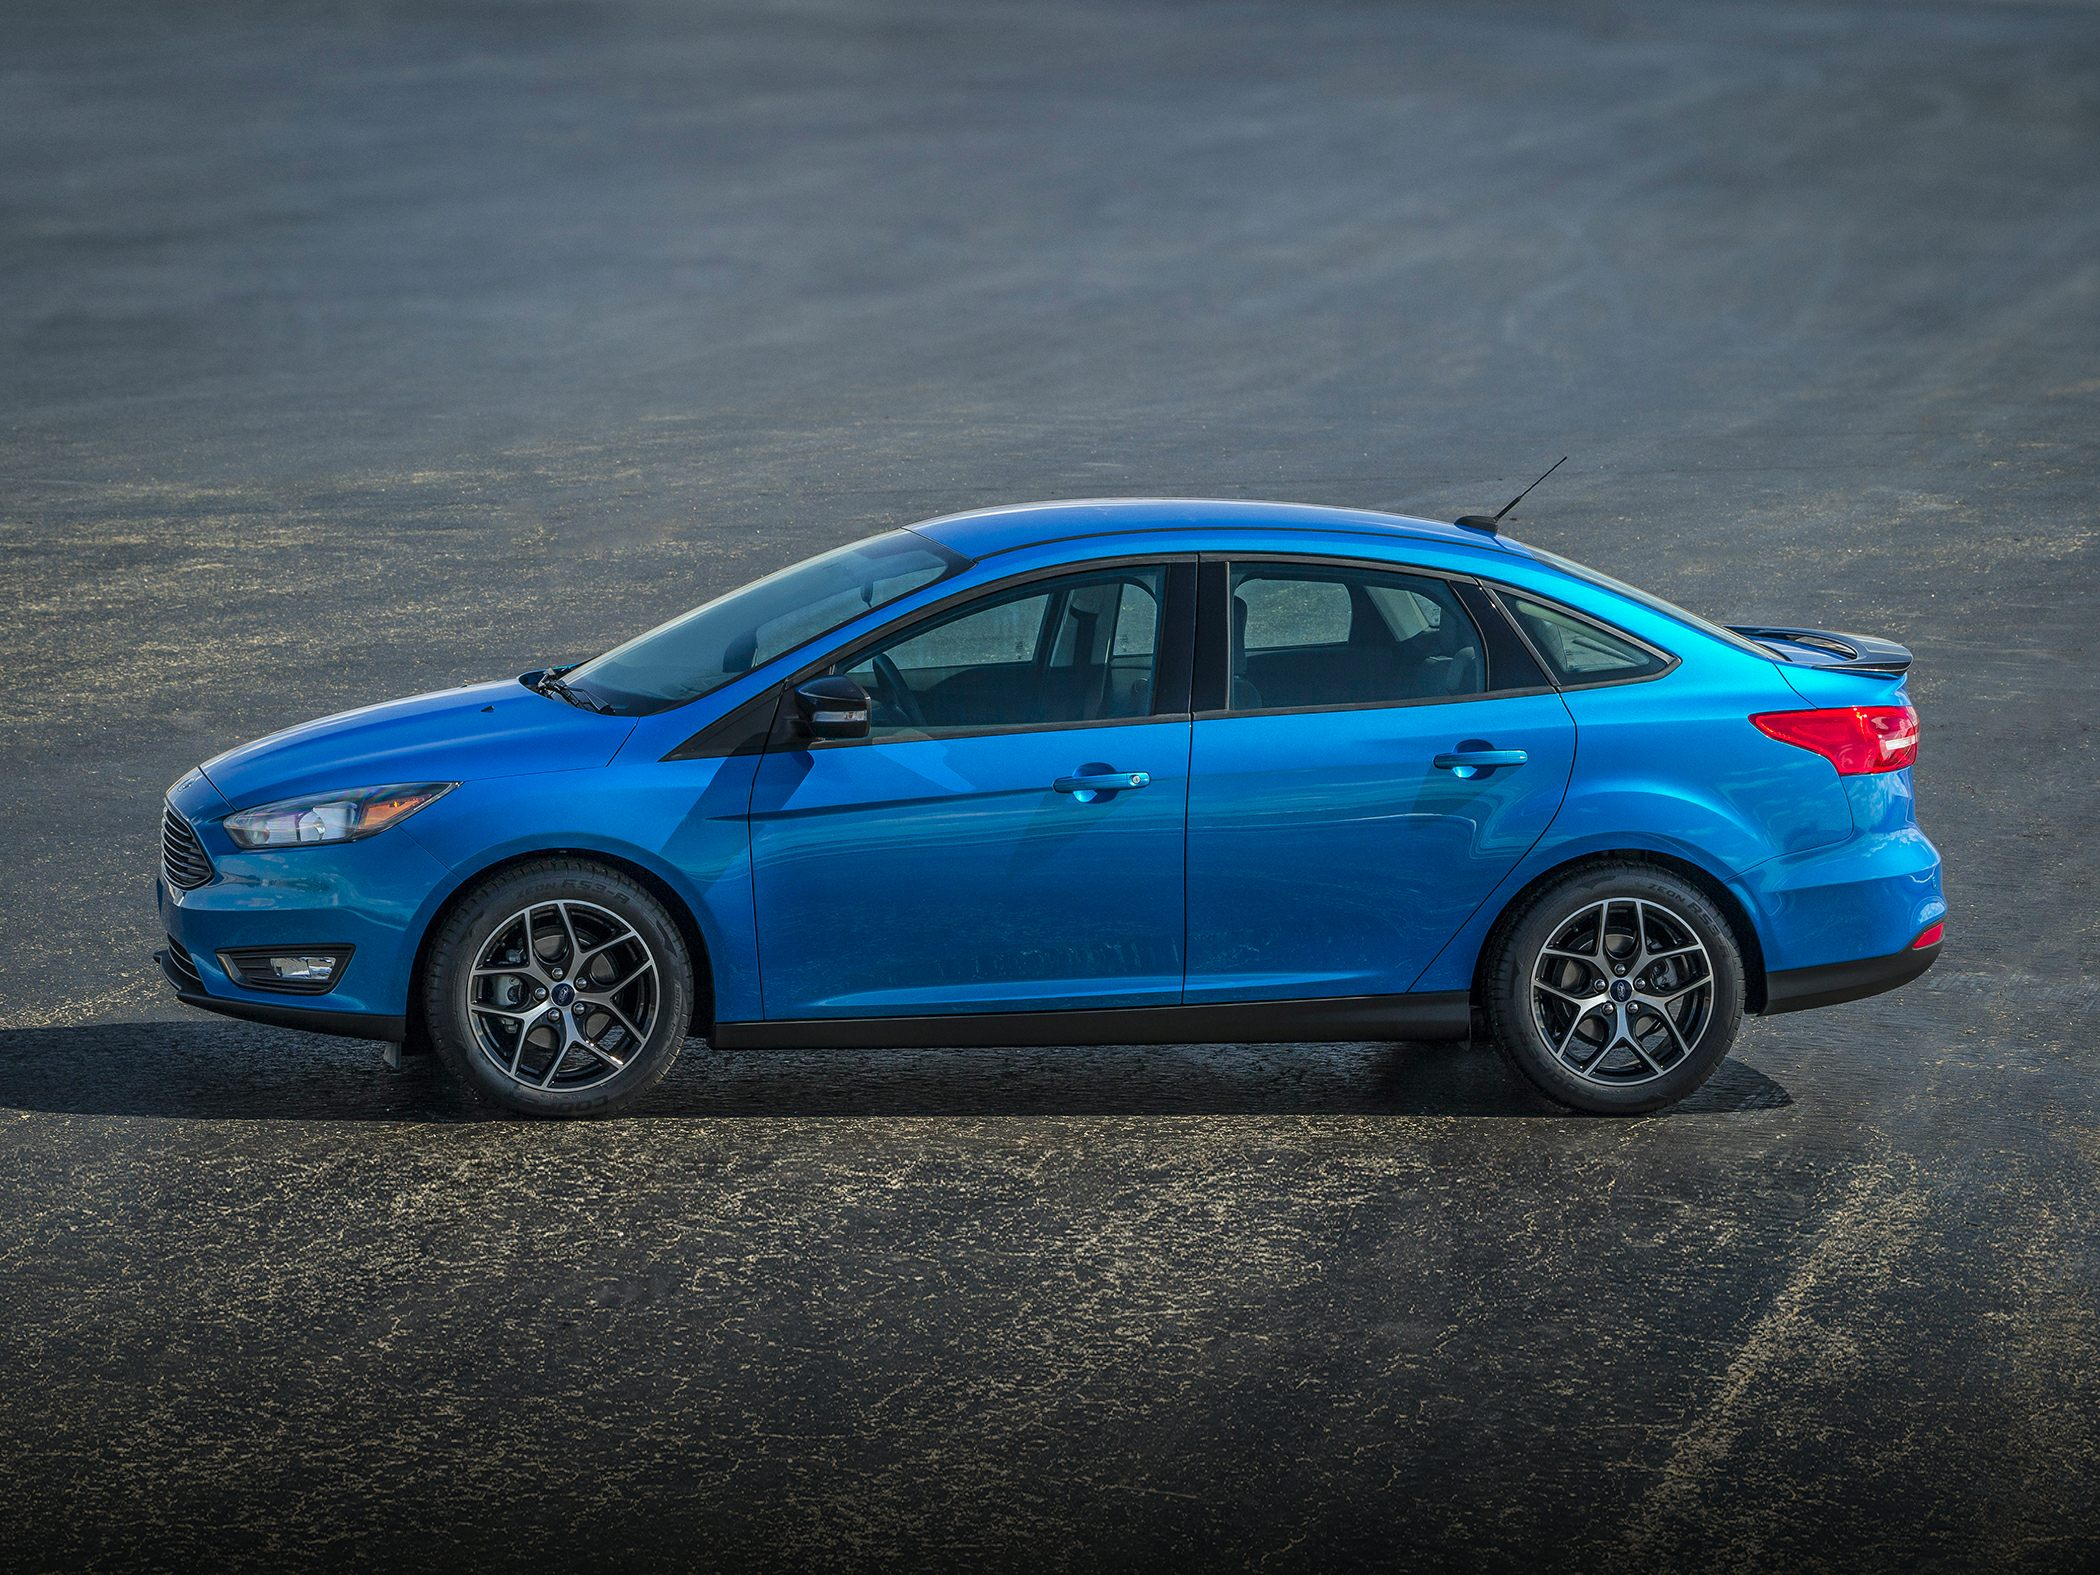 2017 ford focus s 2017 ford focus s